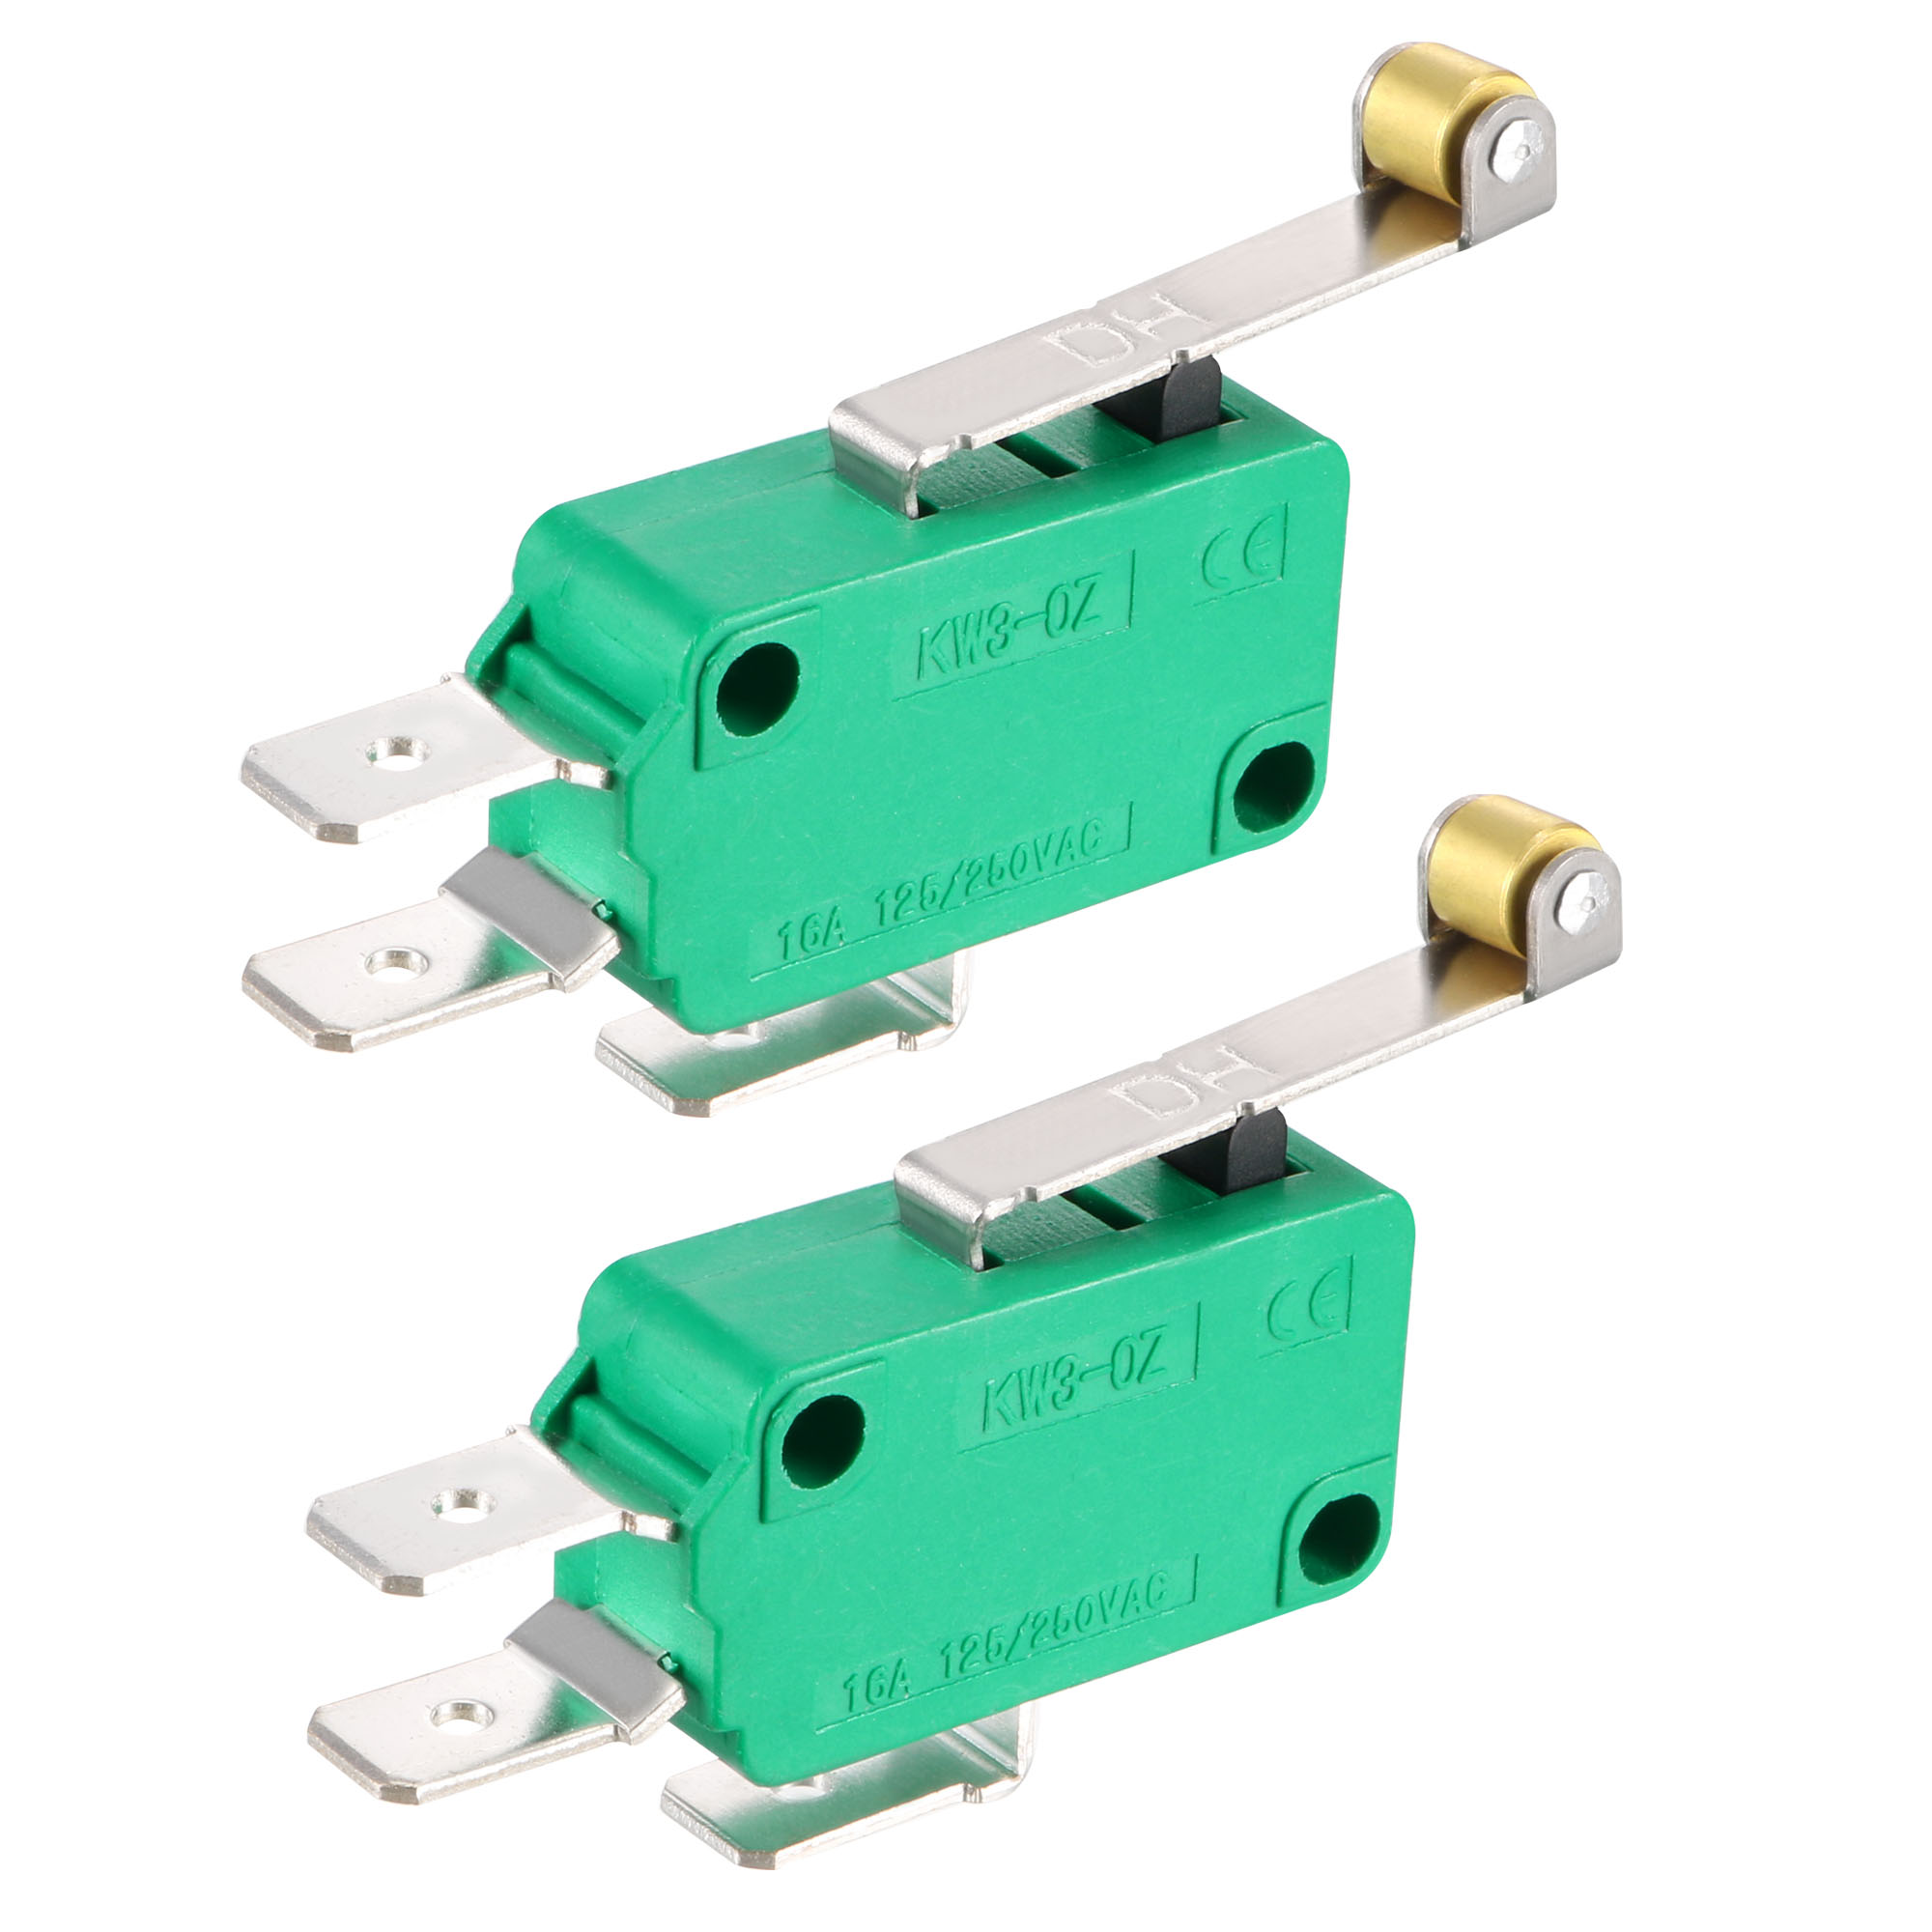 2PCS KW3-OZ 16A 125/250VAC SPDT NO NC Roller Lever Type Micro Limit Switches - image 4 of 4